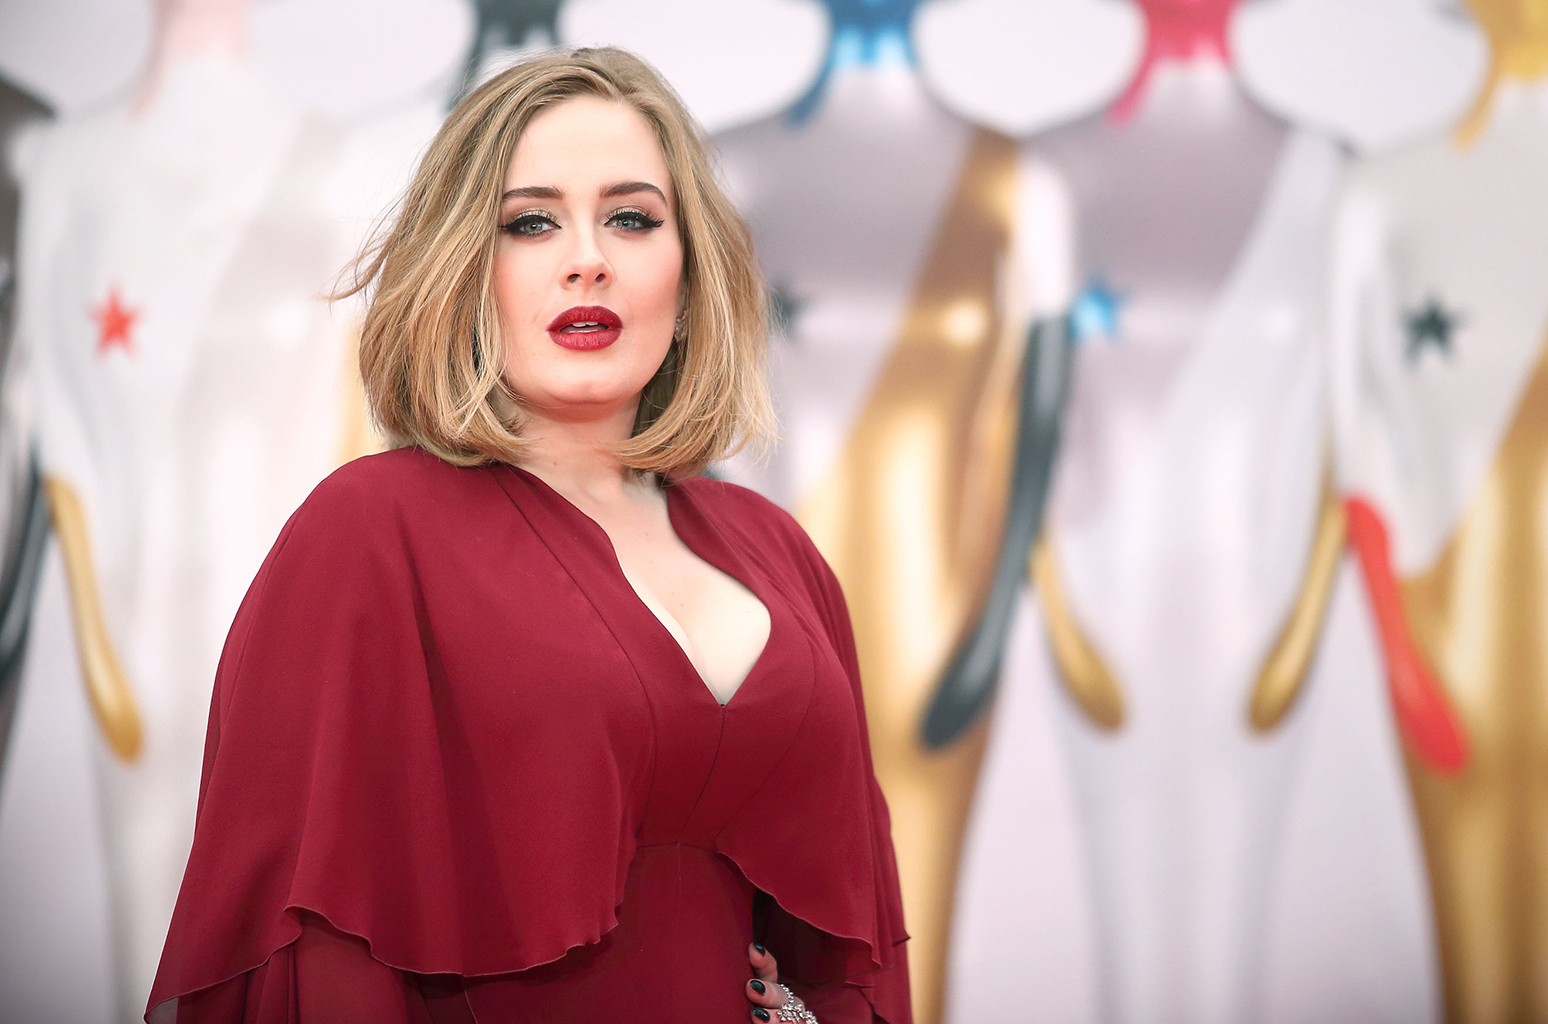 Adele attends the BRIT Awards 2016 at The O2 Arena on Feb. 24, 2016 in London.